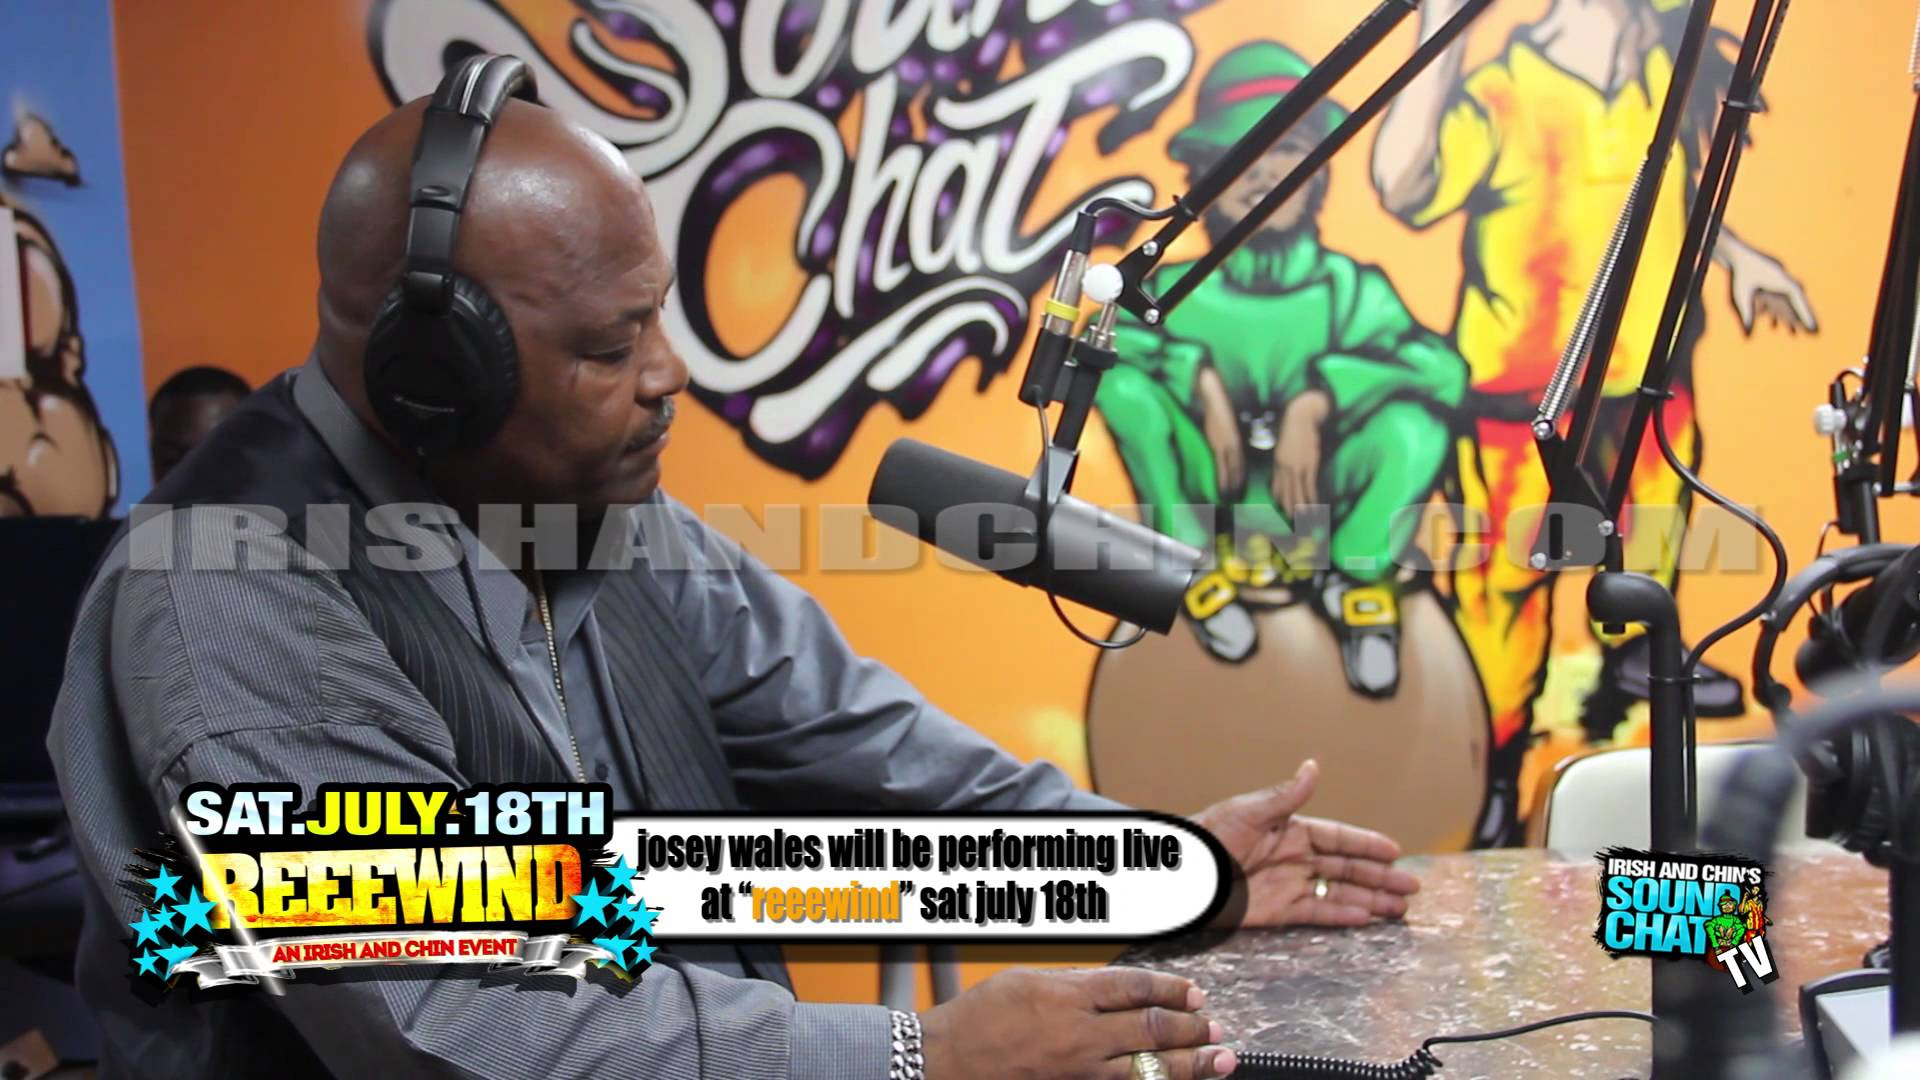 Interview with Josey Wales @ Irish & Chin's Soundchat [6/8/2015]